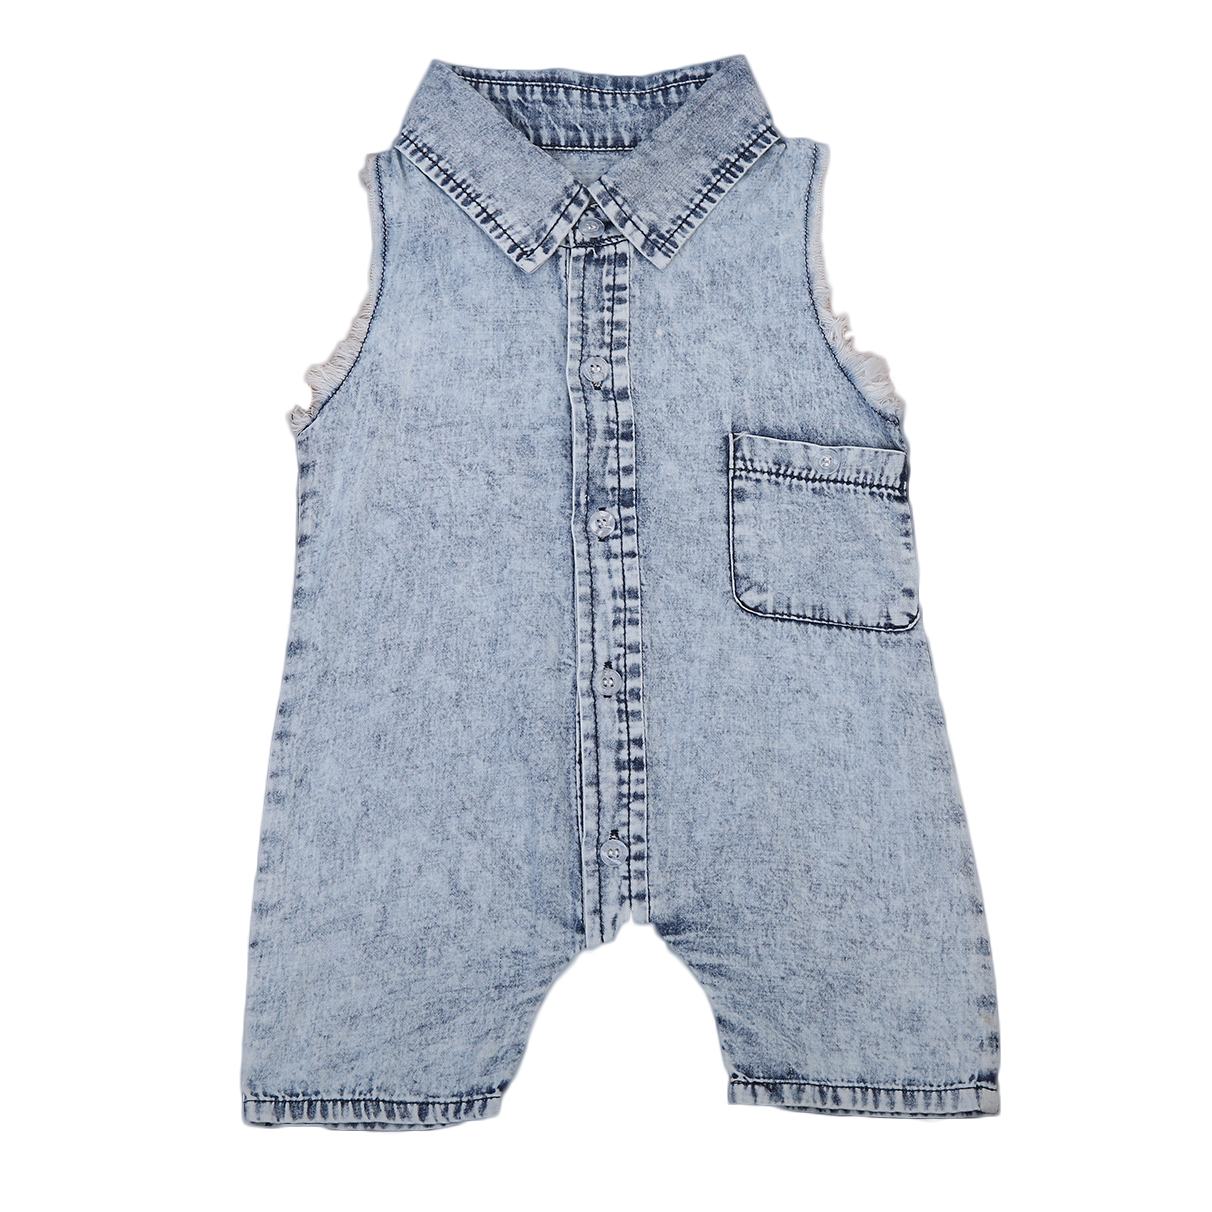 2017 Denim Romper Newborn Baby Boy Girl Summer Sleeveless Pocket Clothes Toddler Kids Jumpsuit Sunsuit Children Clothing Outfits summer newborn infant baby girl romper short sleeve floral romper jumpsuit outfits sunsuit clothes